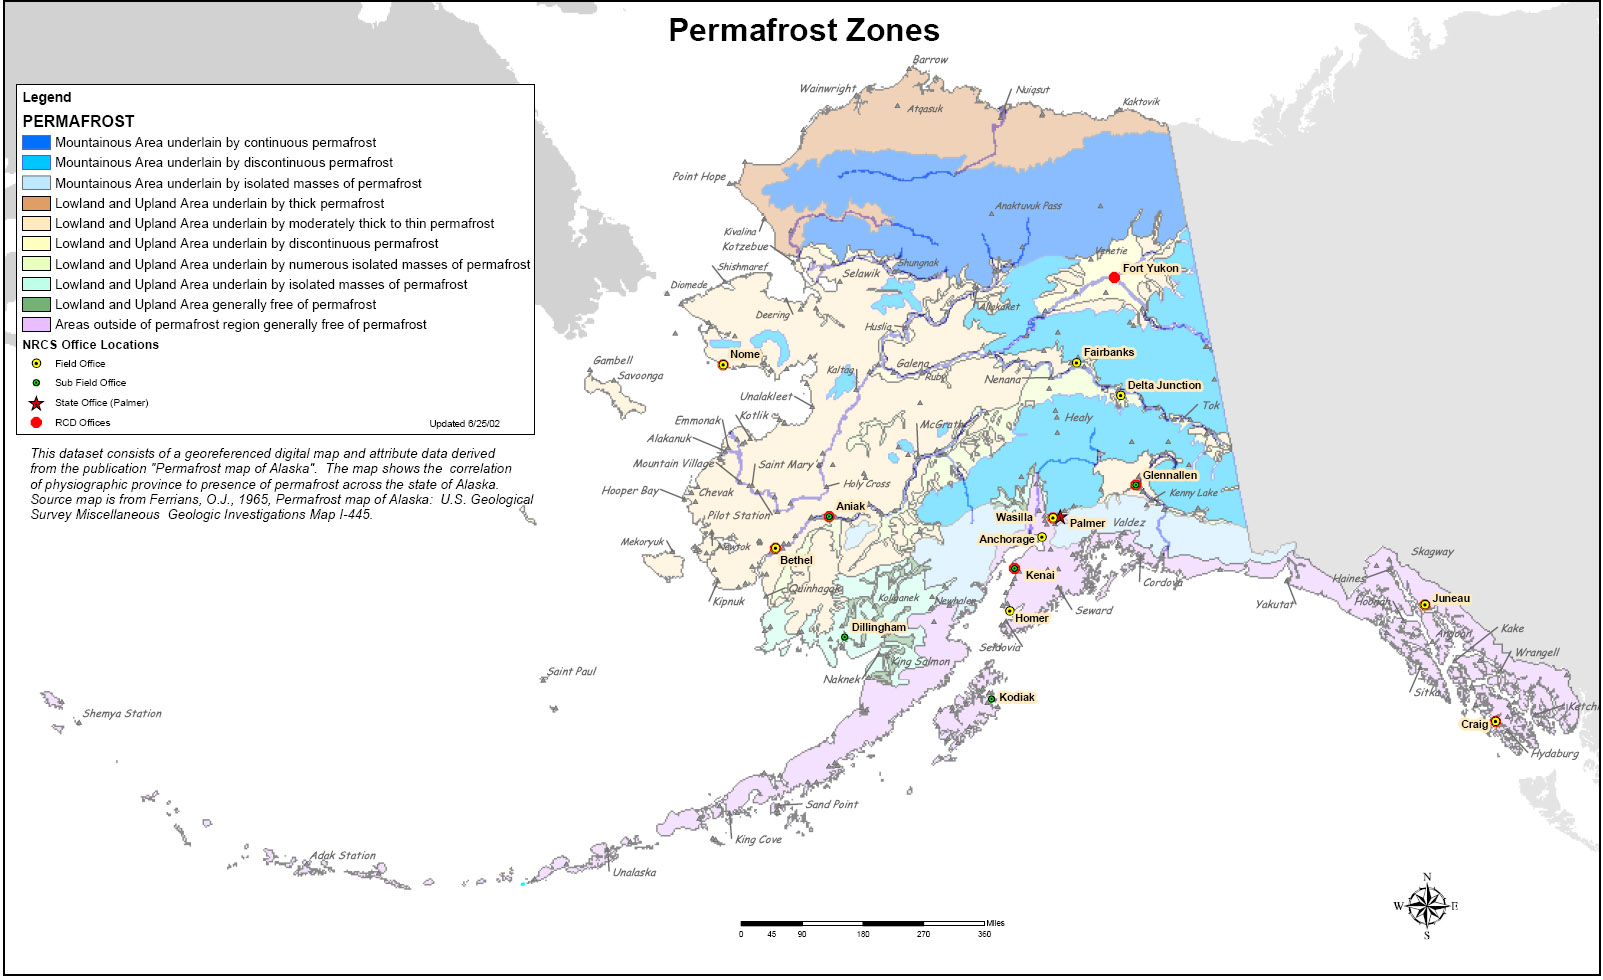 Map showing permfrost zones